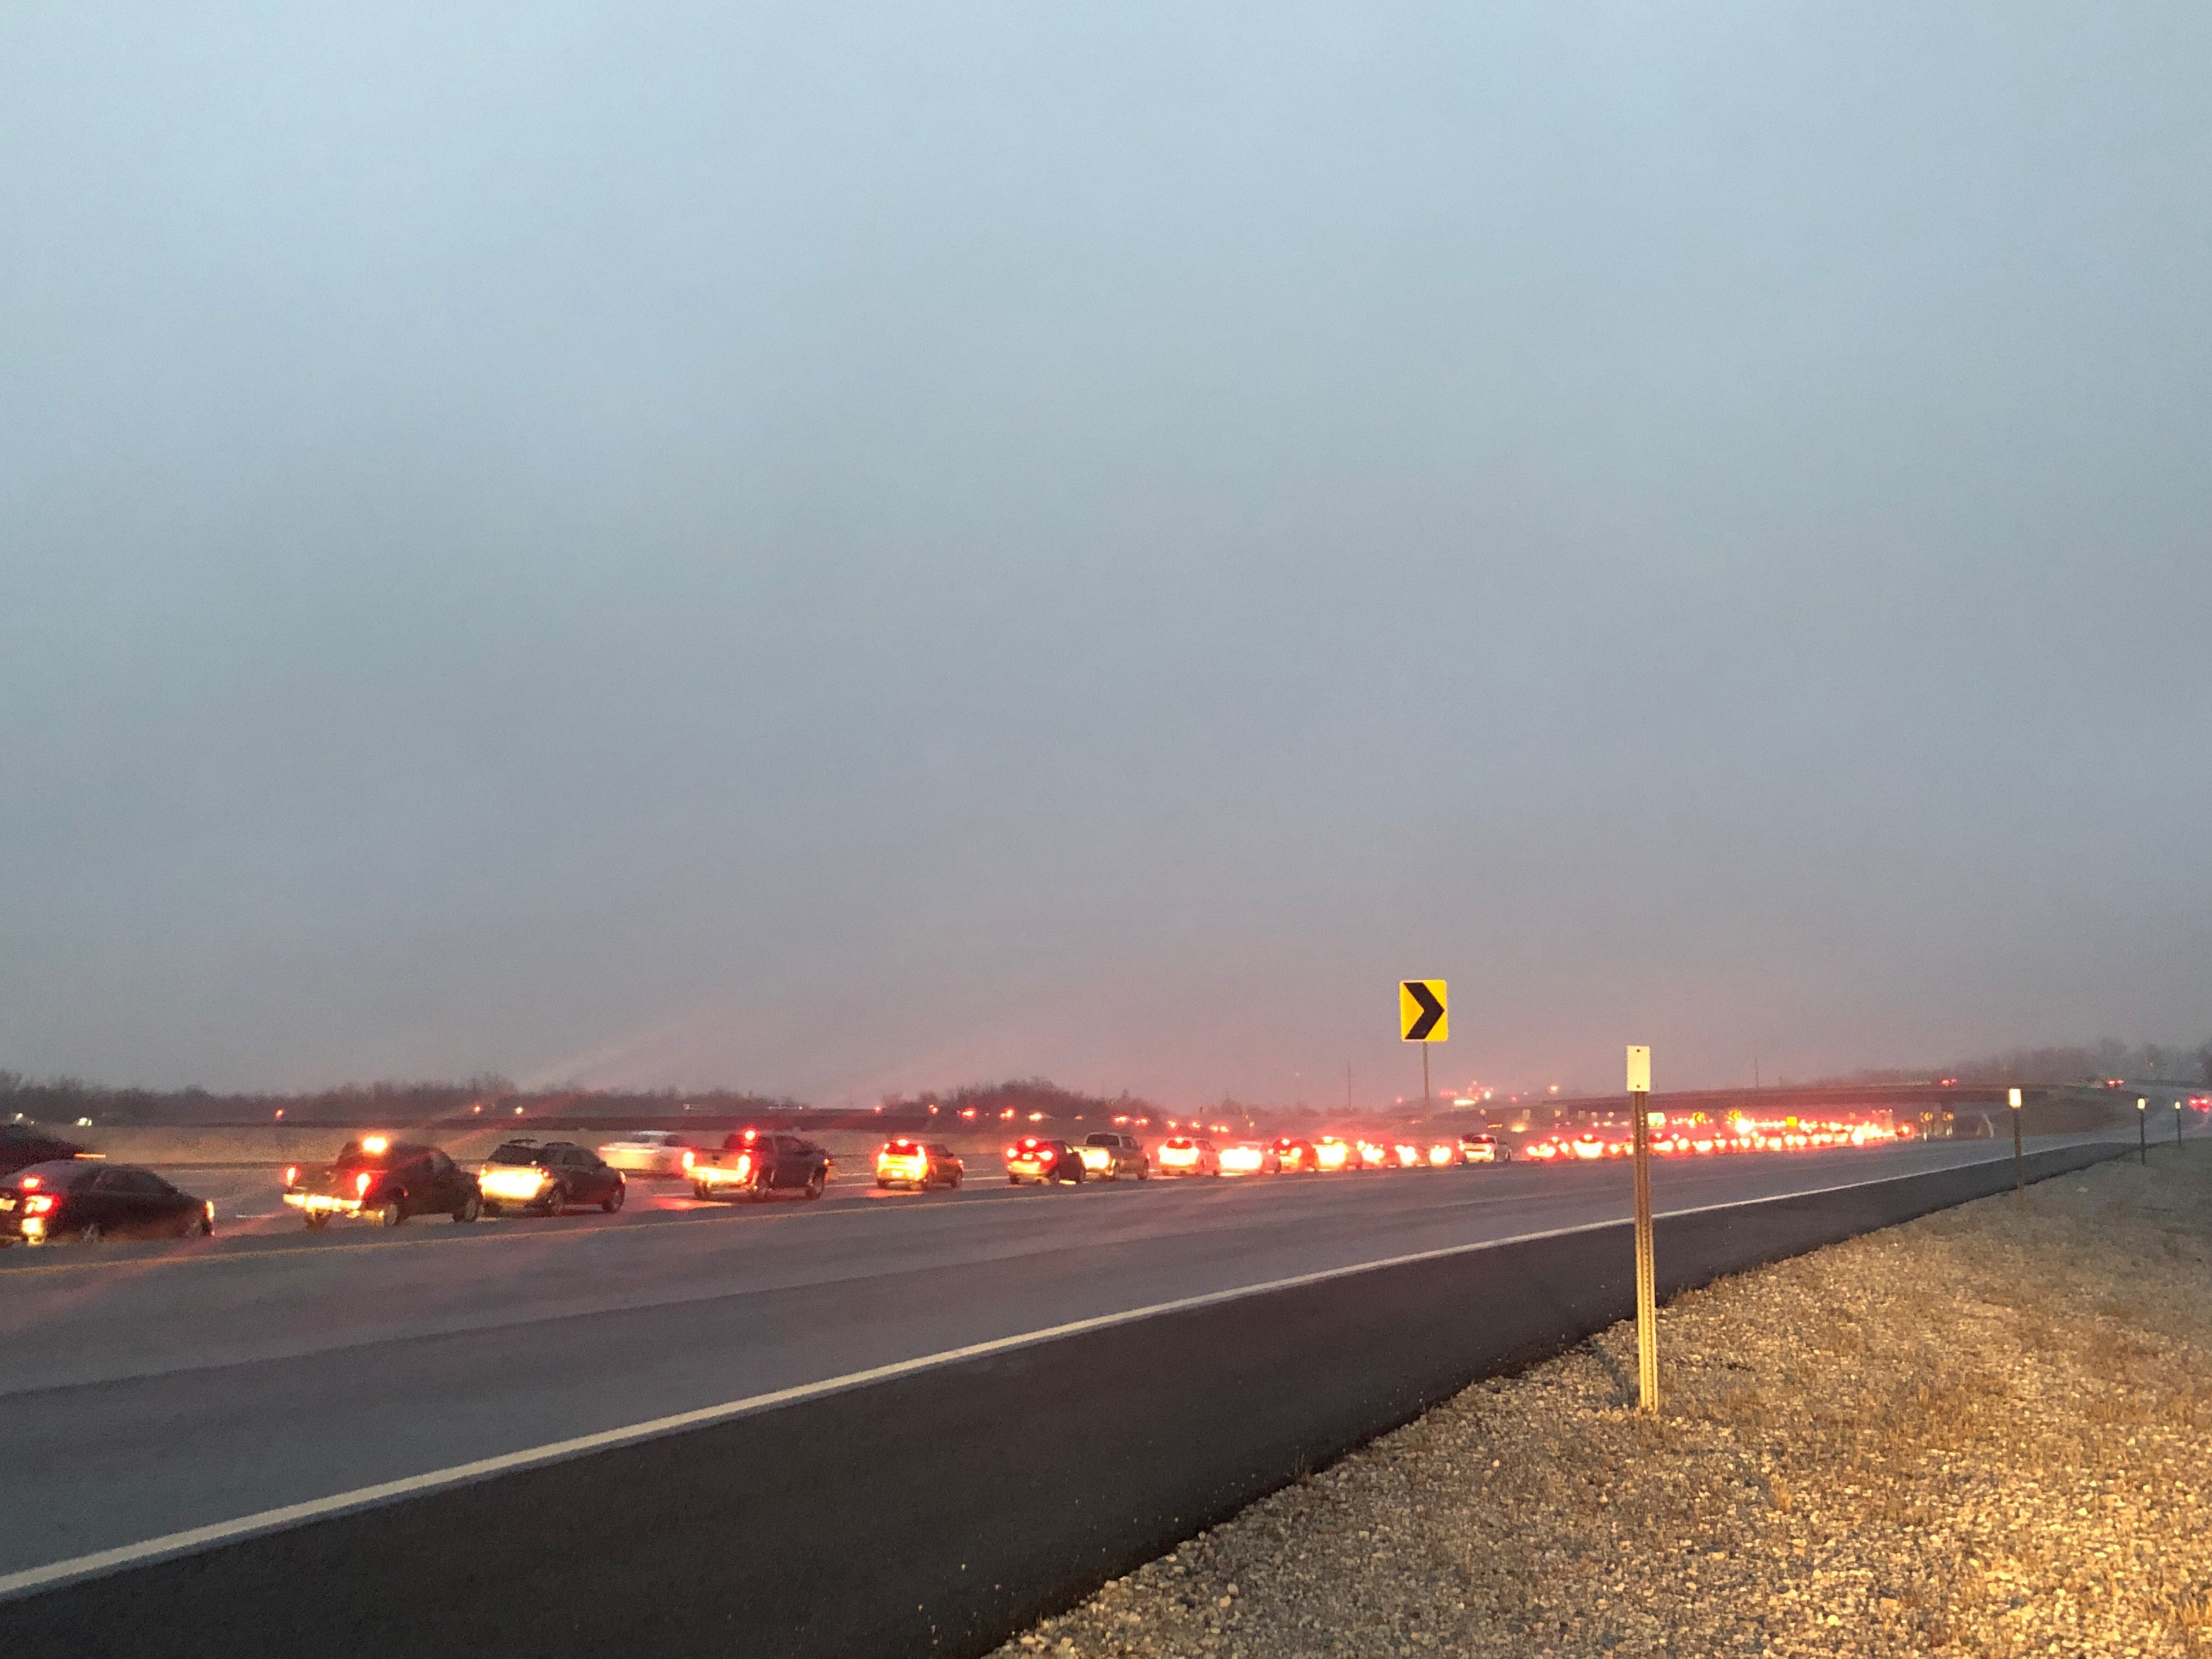 Traffic was stopped on the Fulbright Expressway in Fayetteville early Thursday (Feb. 28) after freezing drizzle left overpasses icy and caused several wrecks. (5NEWS/Jordan Tidwell)